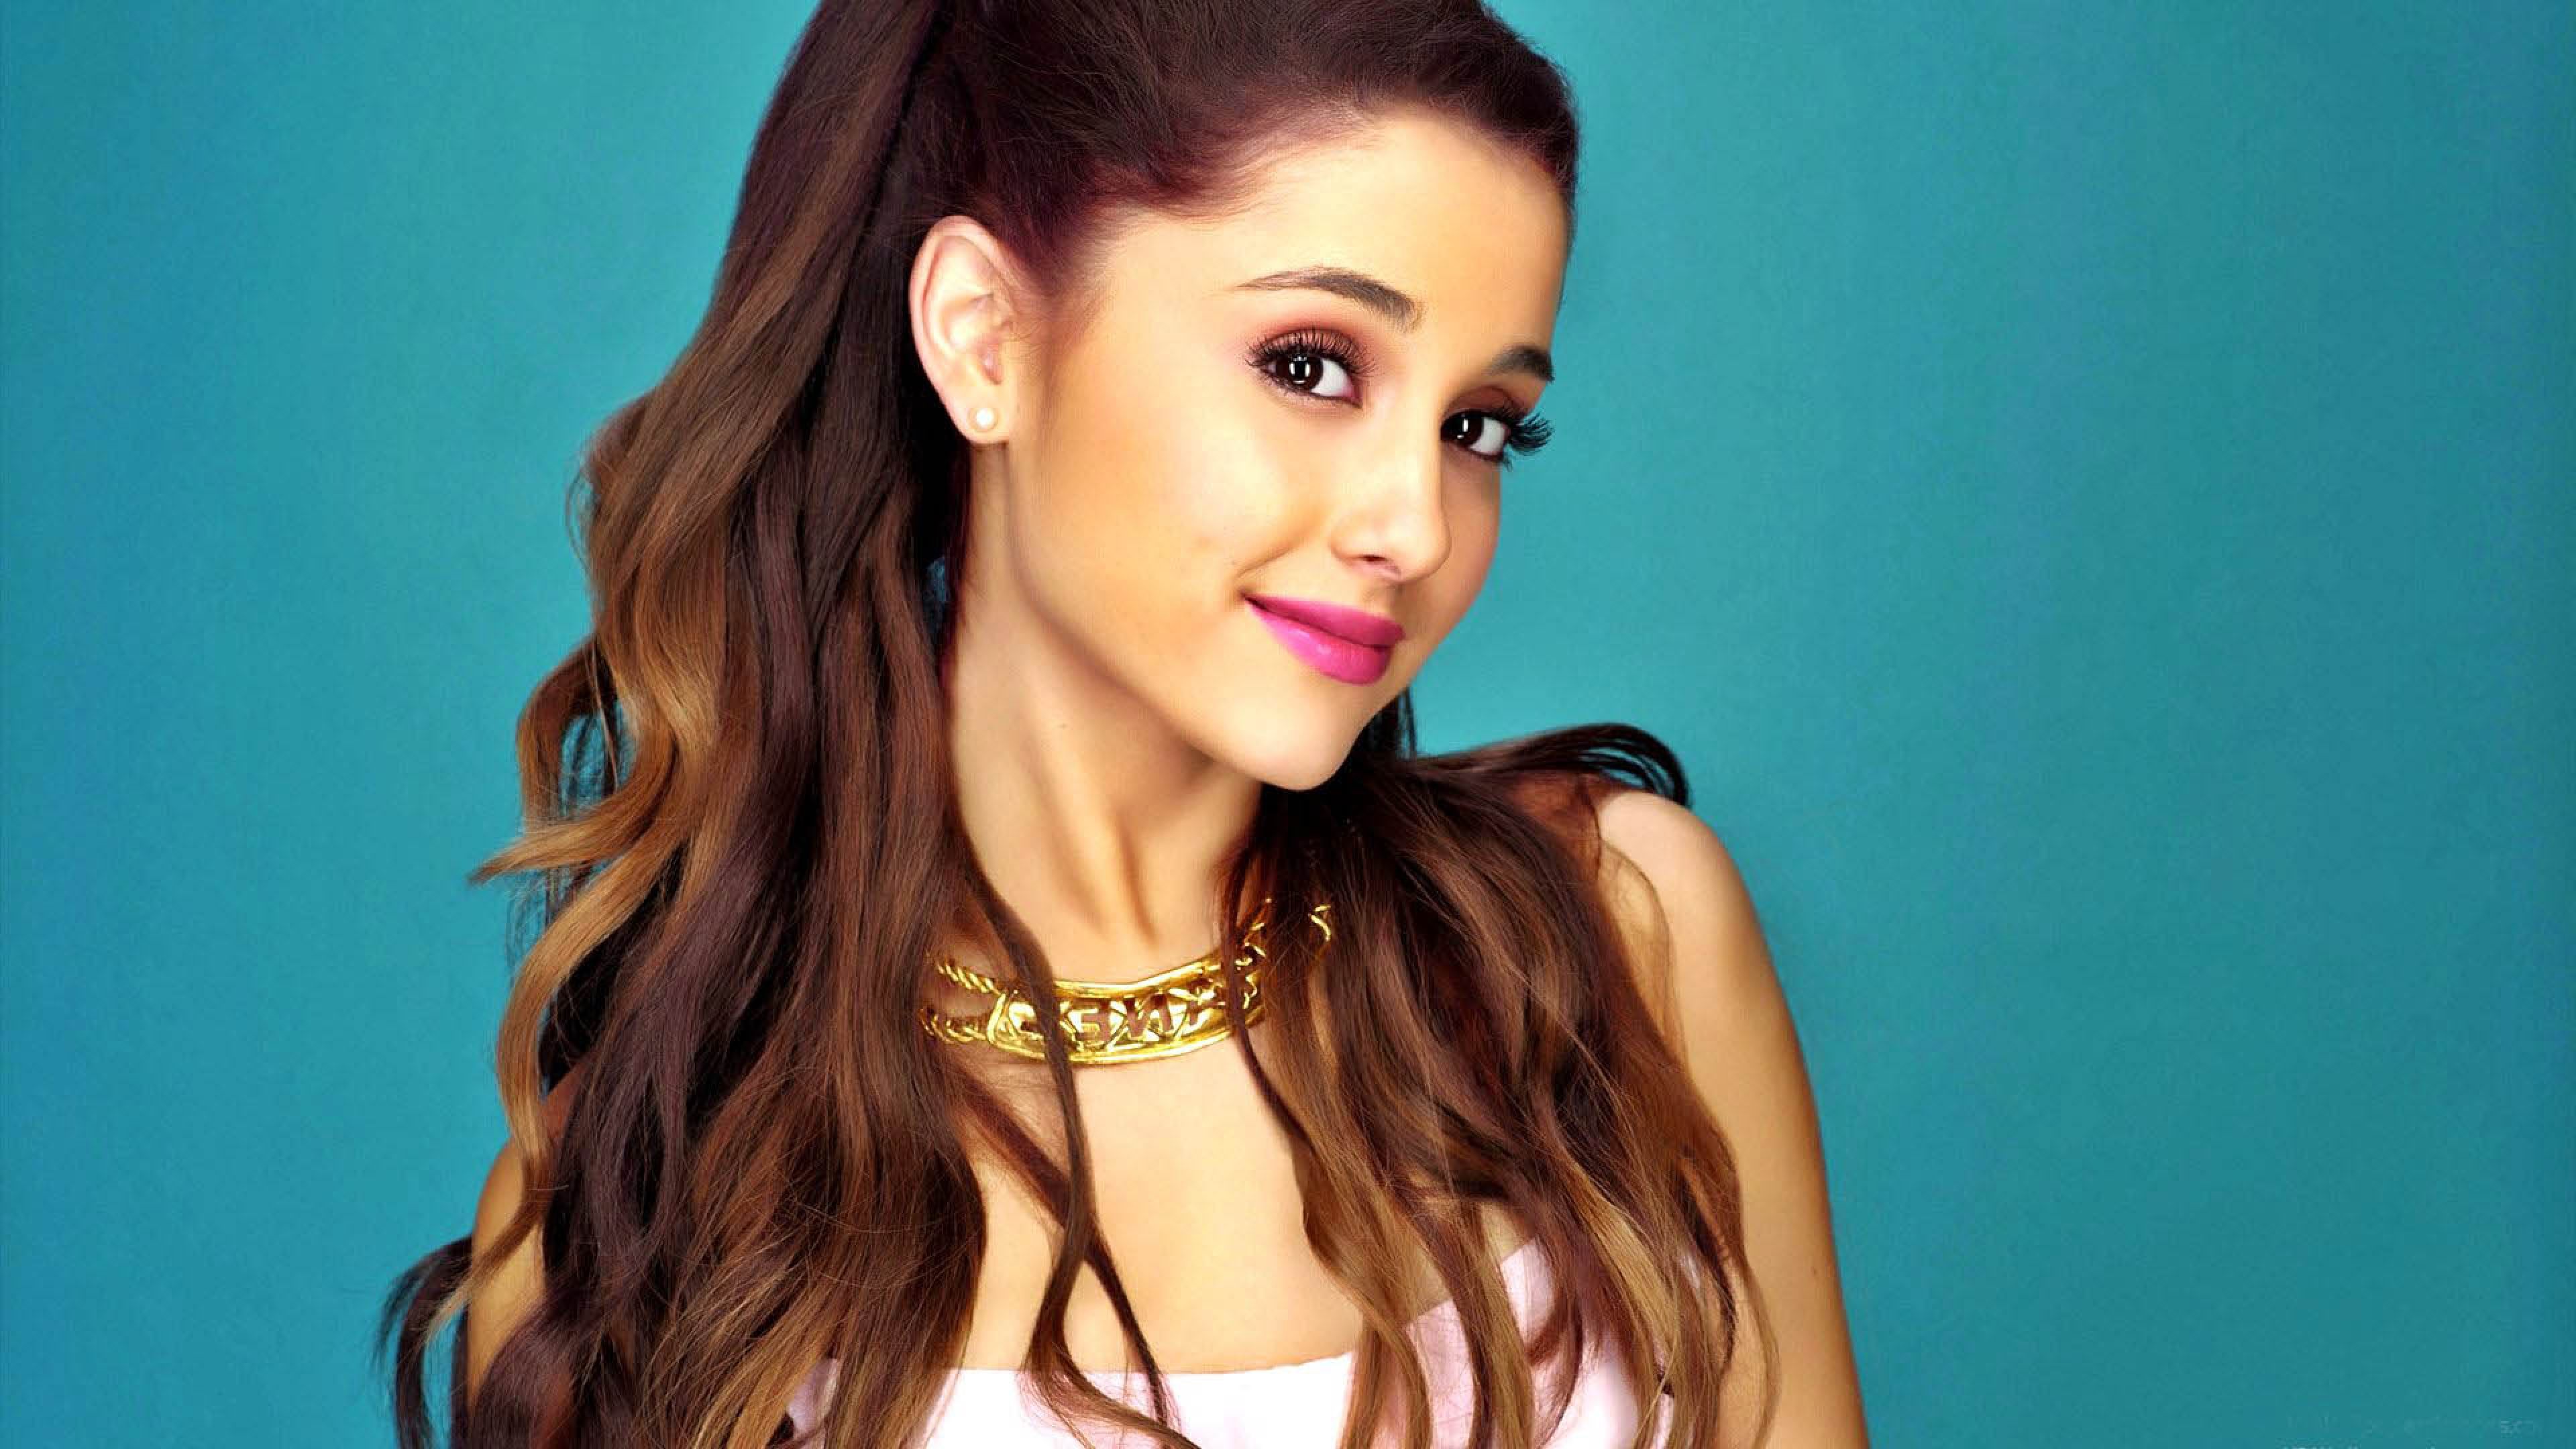 Wallpapers Of Ariana Grande